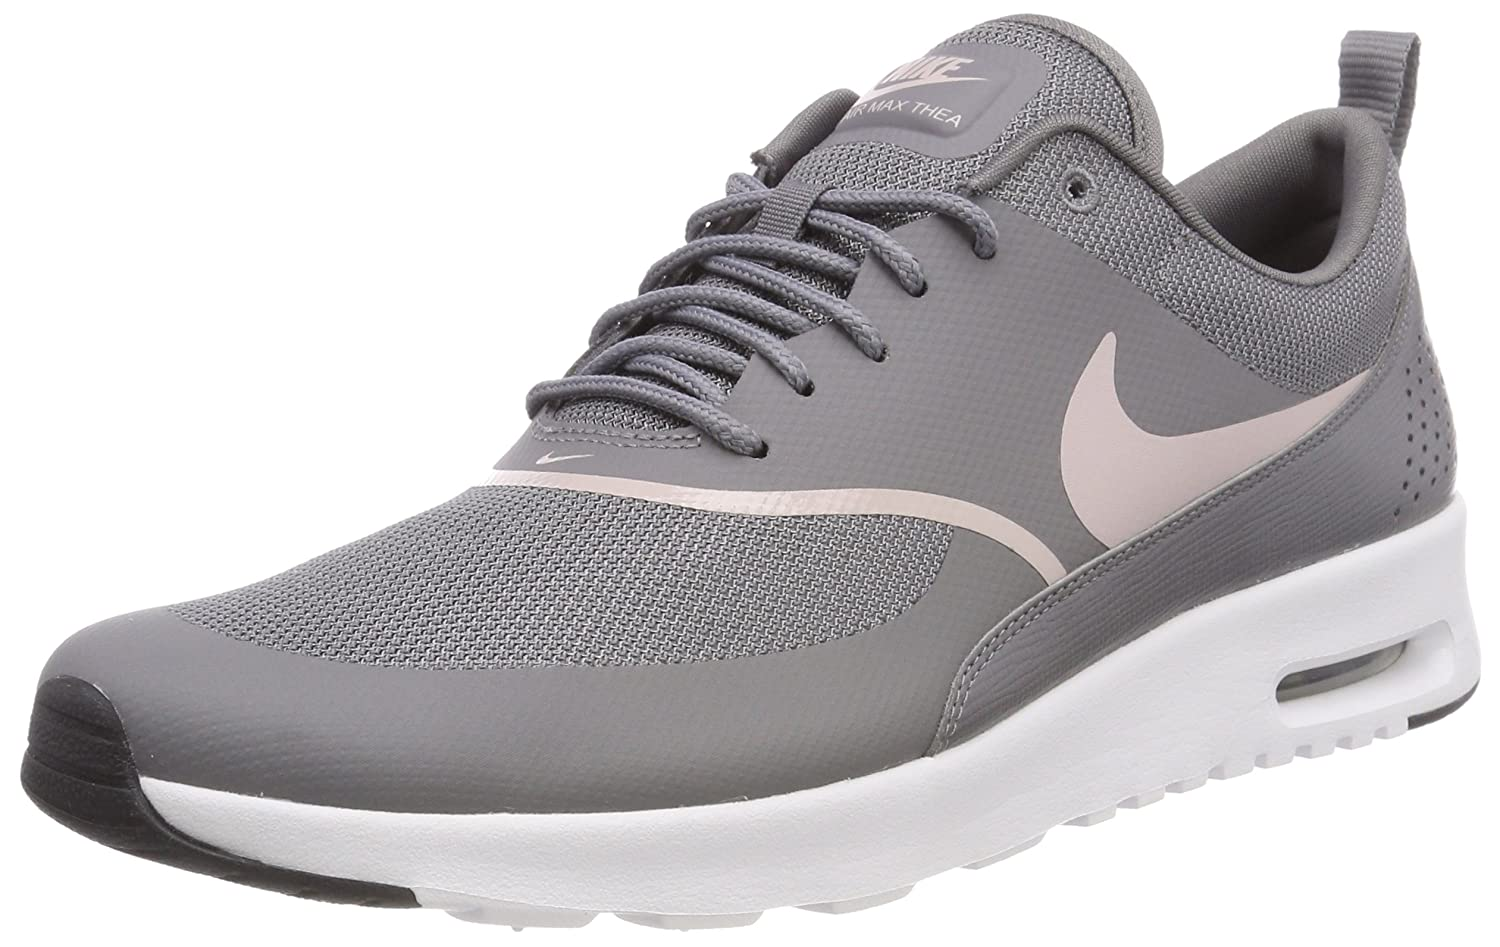 NIKE Women's Air Max Thea Low-Top Sneakers, Black B071HFGX8M us-0 / asia size s|Grey (Gunsmoke/Particle Rose-black 029)